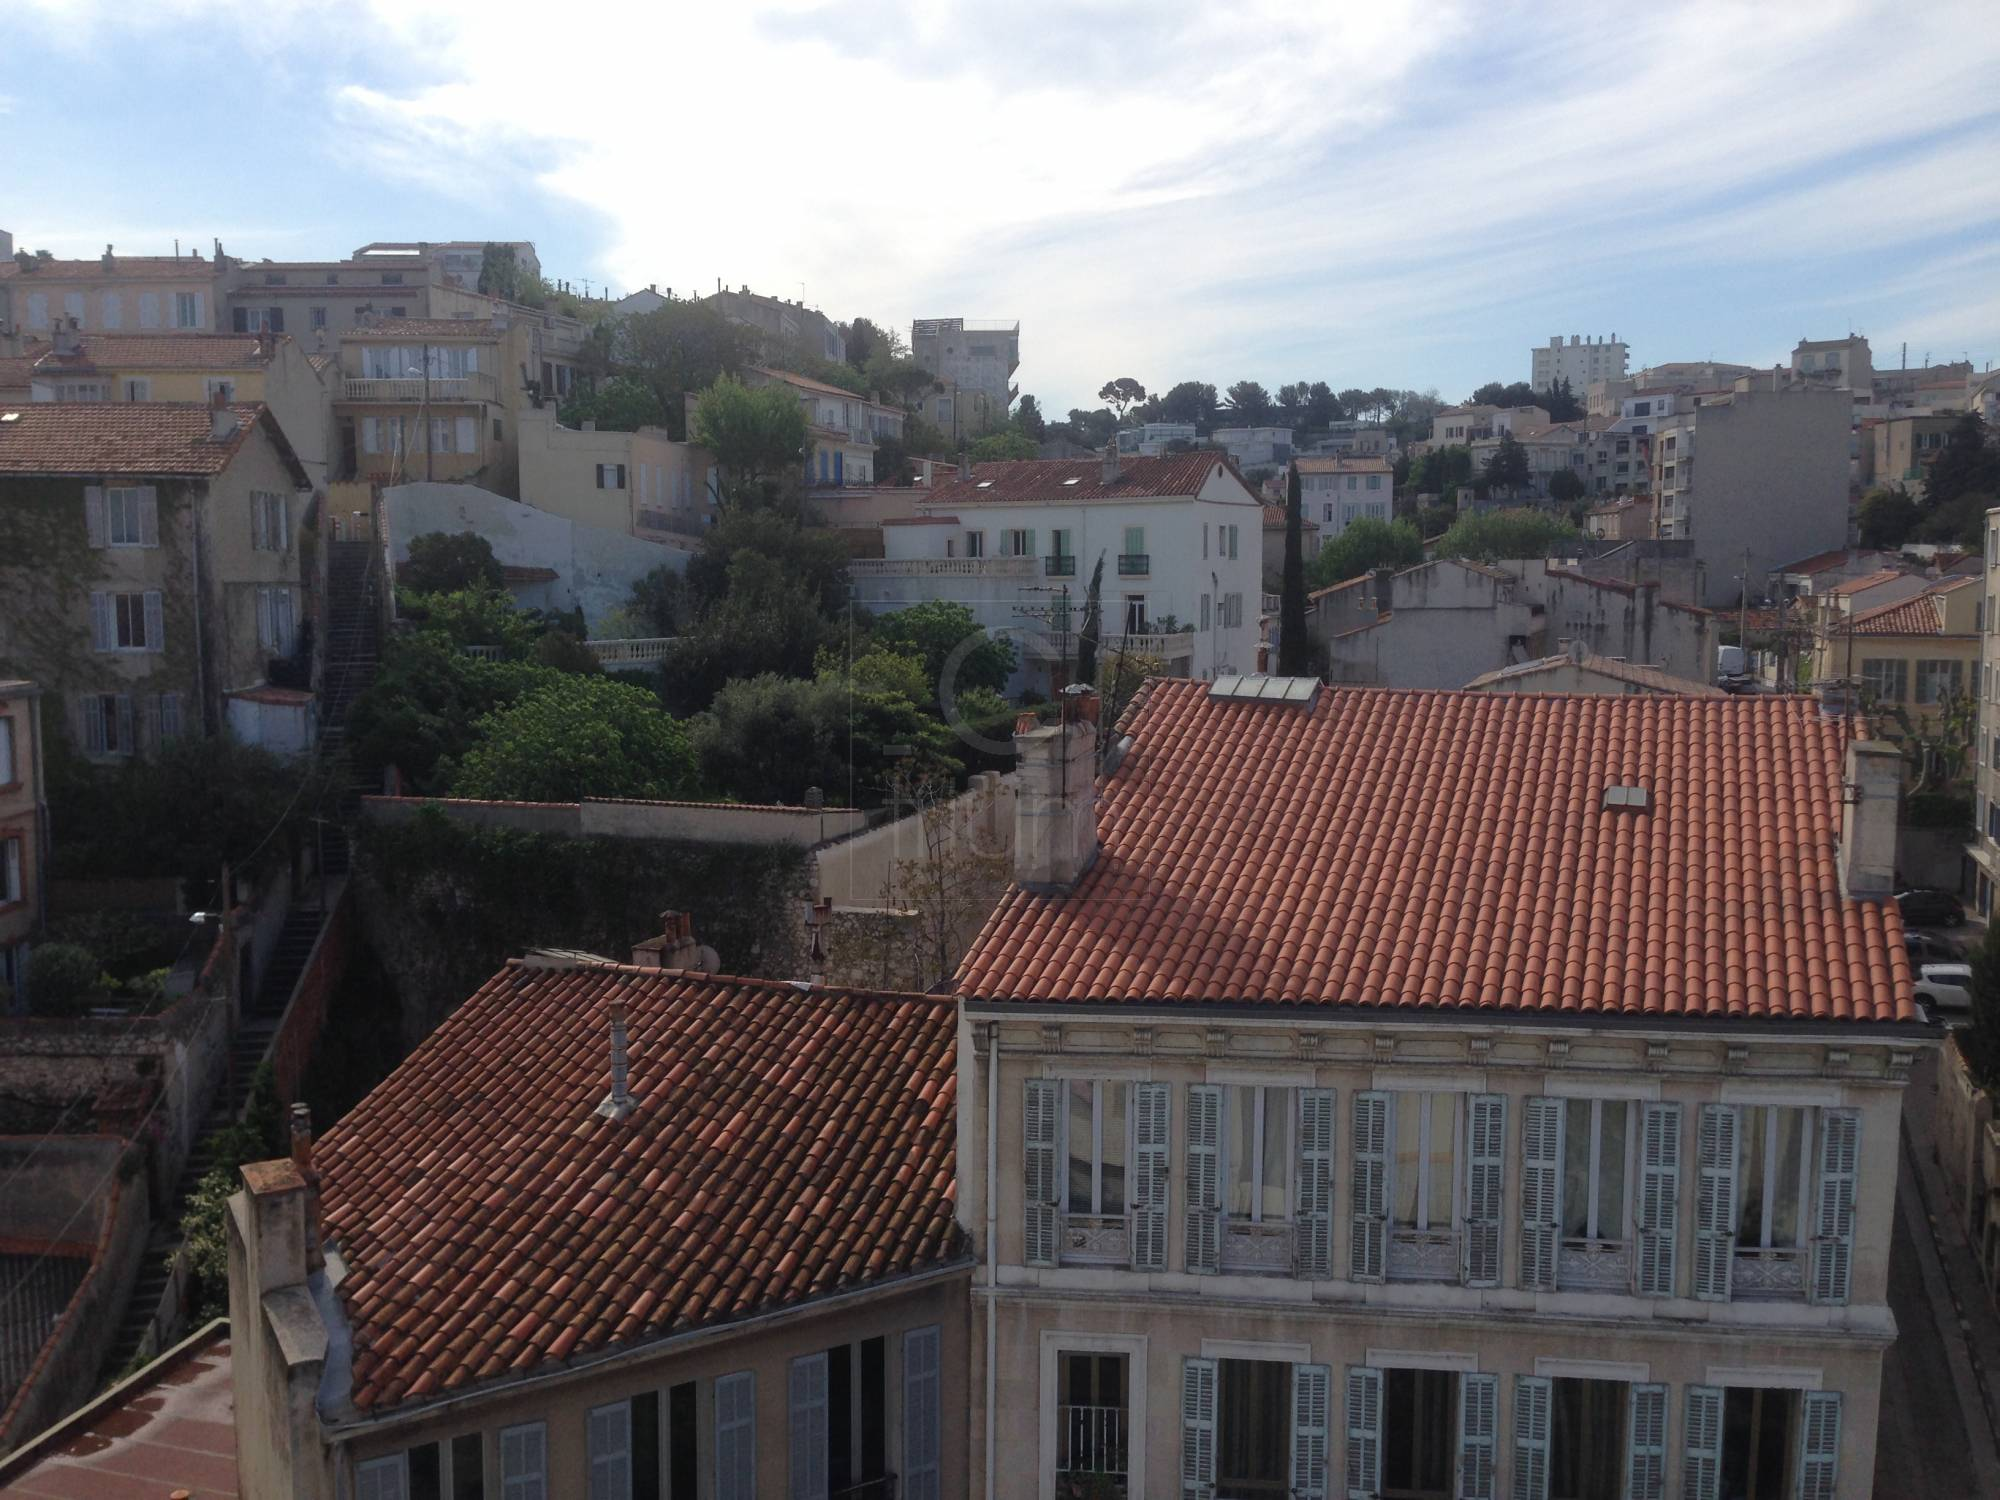 Vente appartement t2 f2 marseille 7eme saint lambert for T2 marseille